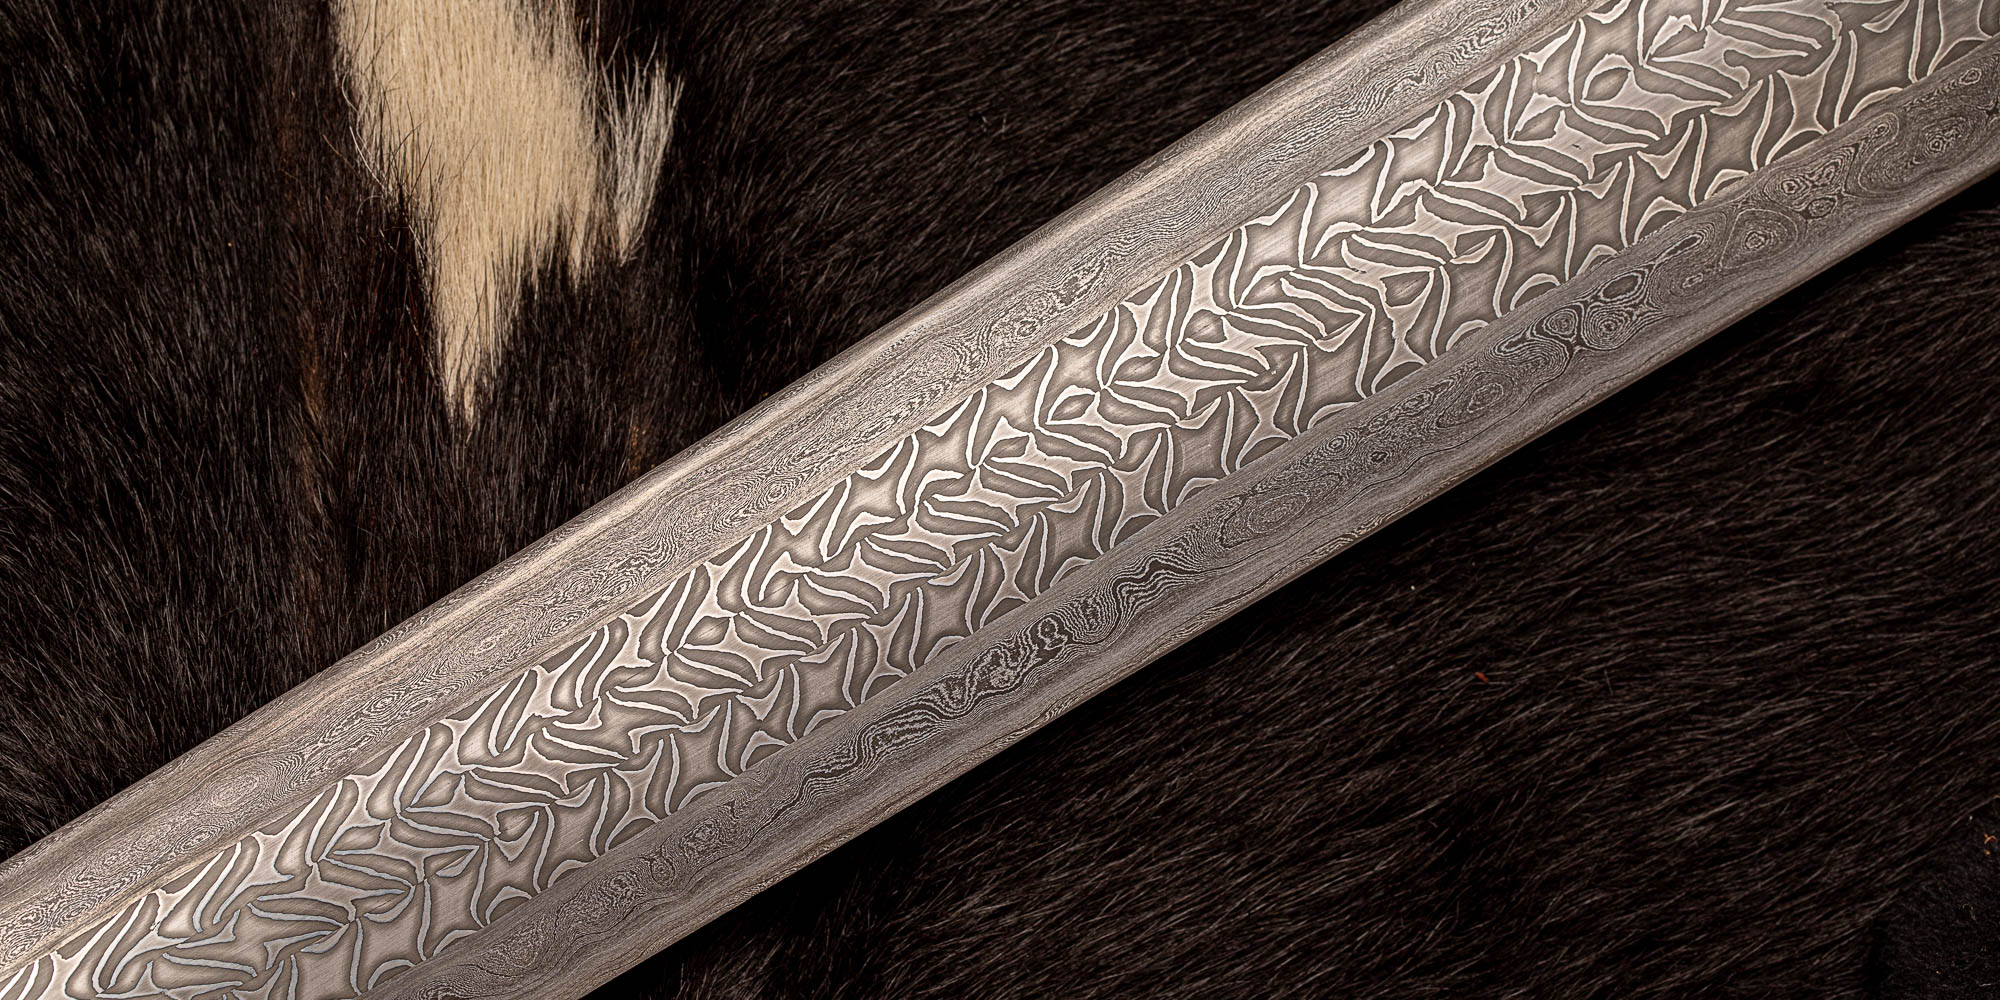 Sword Damascus Detail